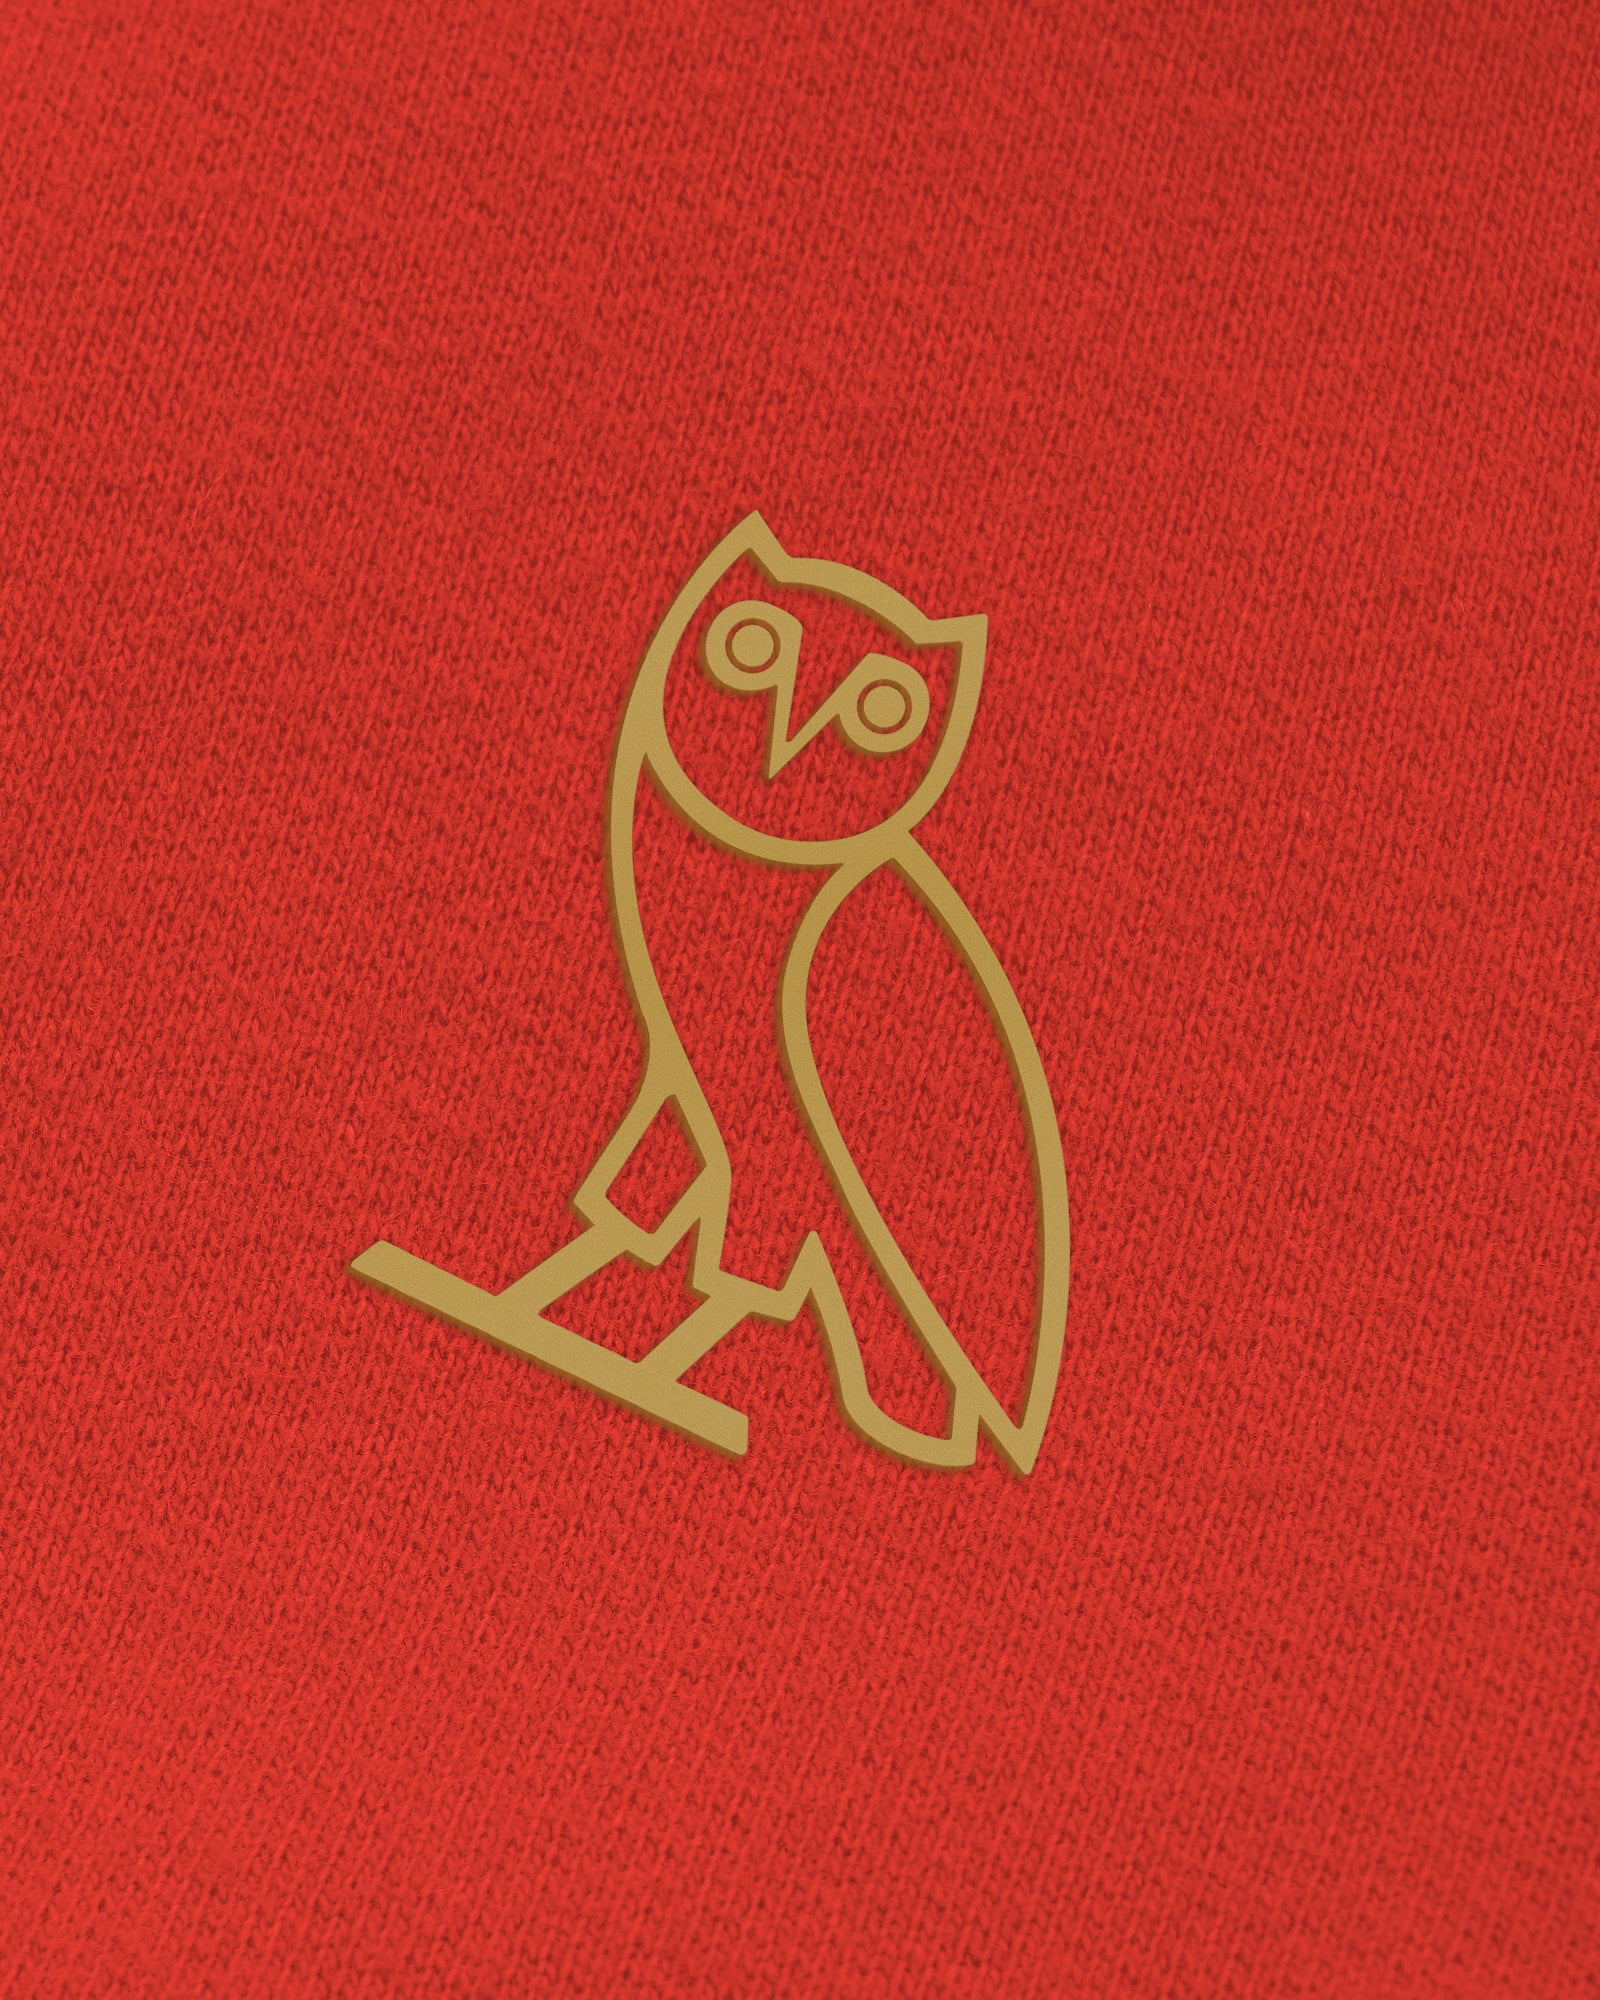 OWL LONGSLEEVE T-SHIRT - RED